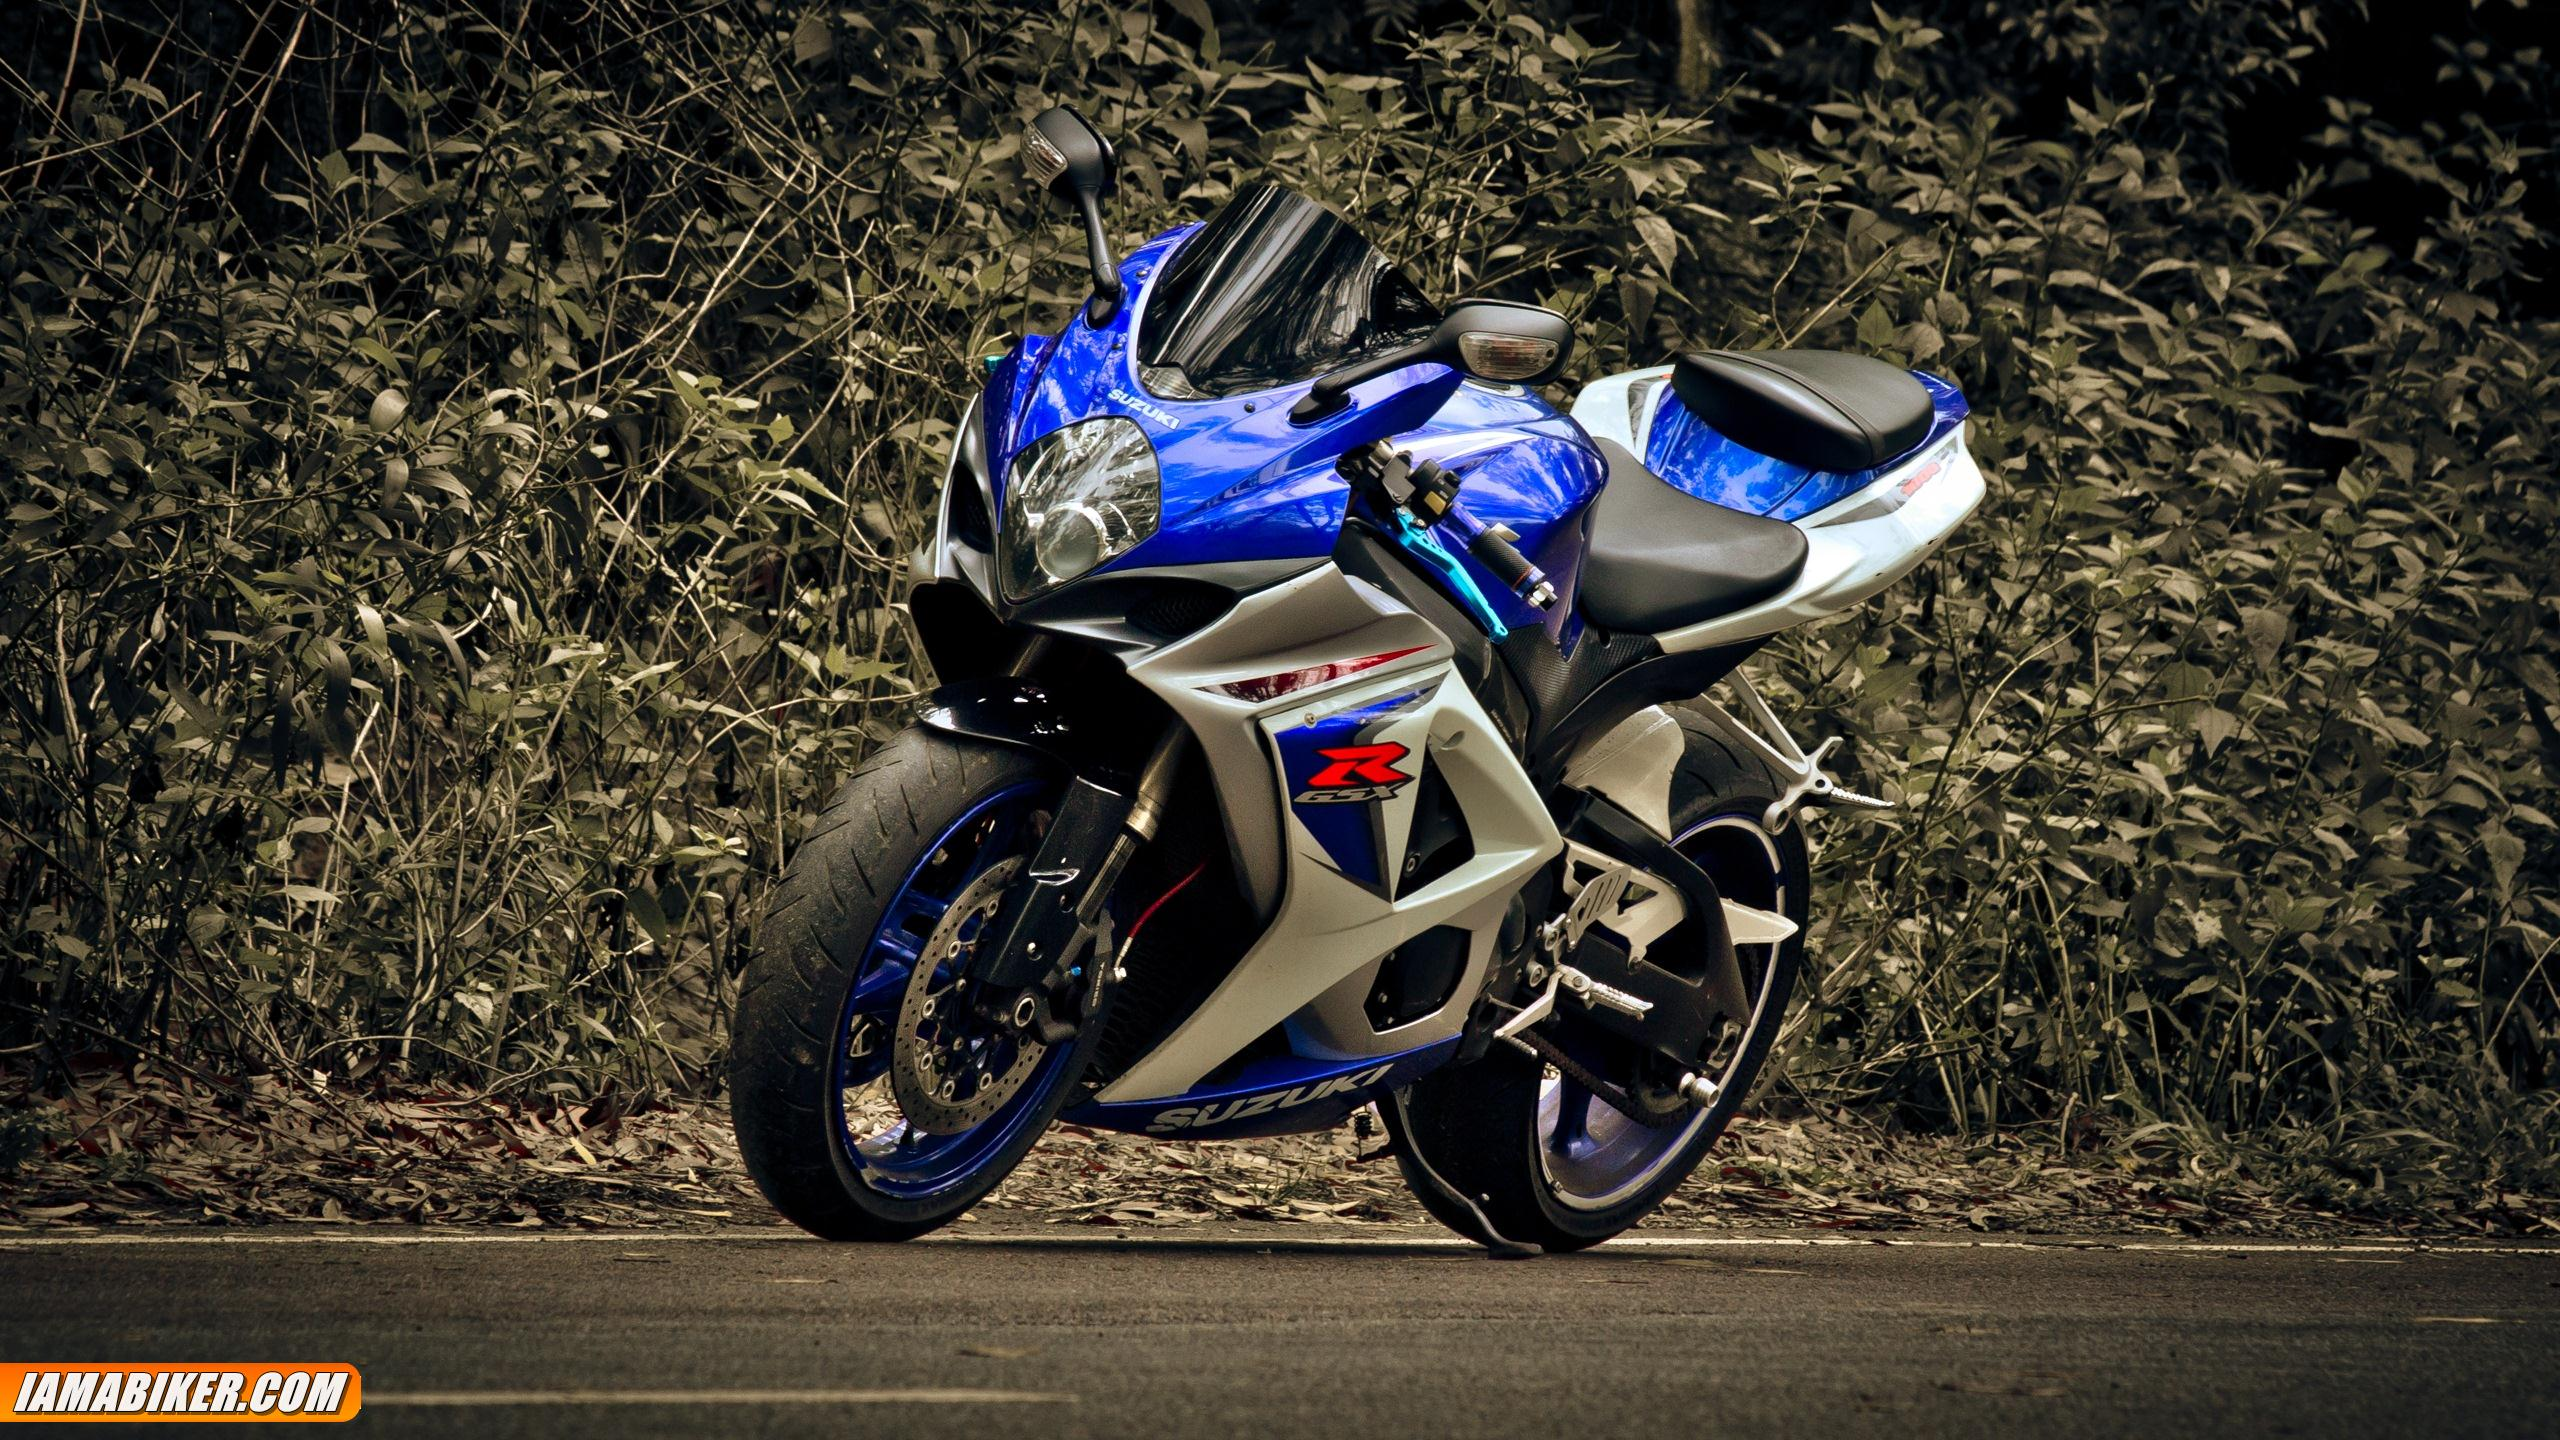 2014 Suzuki GSX-R1000 SERT looks Like Almost Carbon - luweh.com